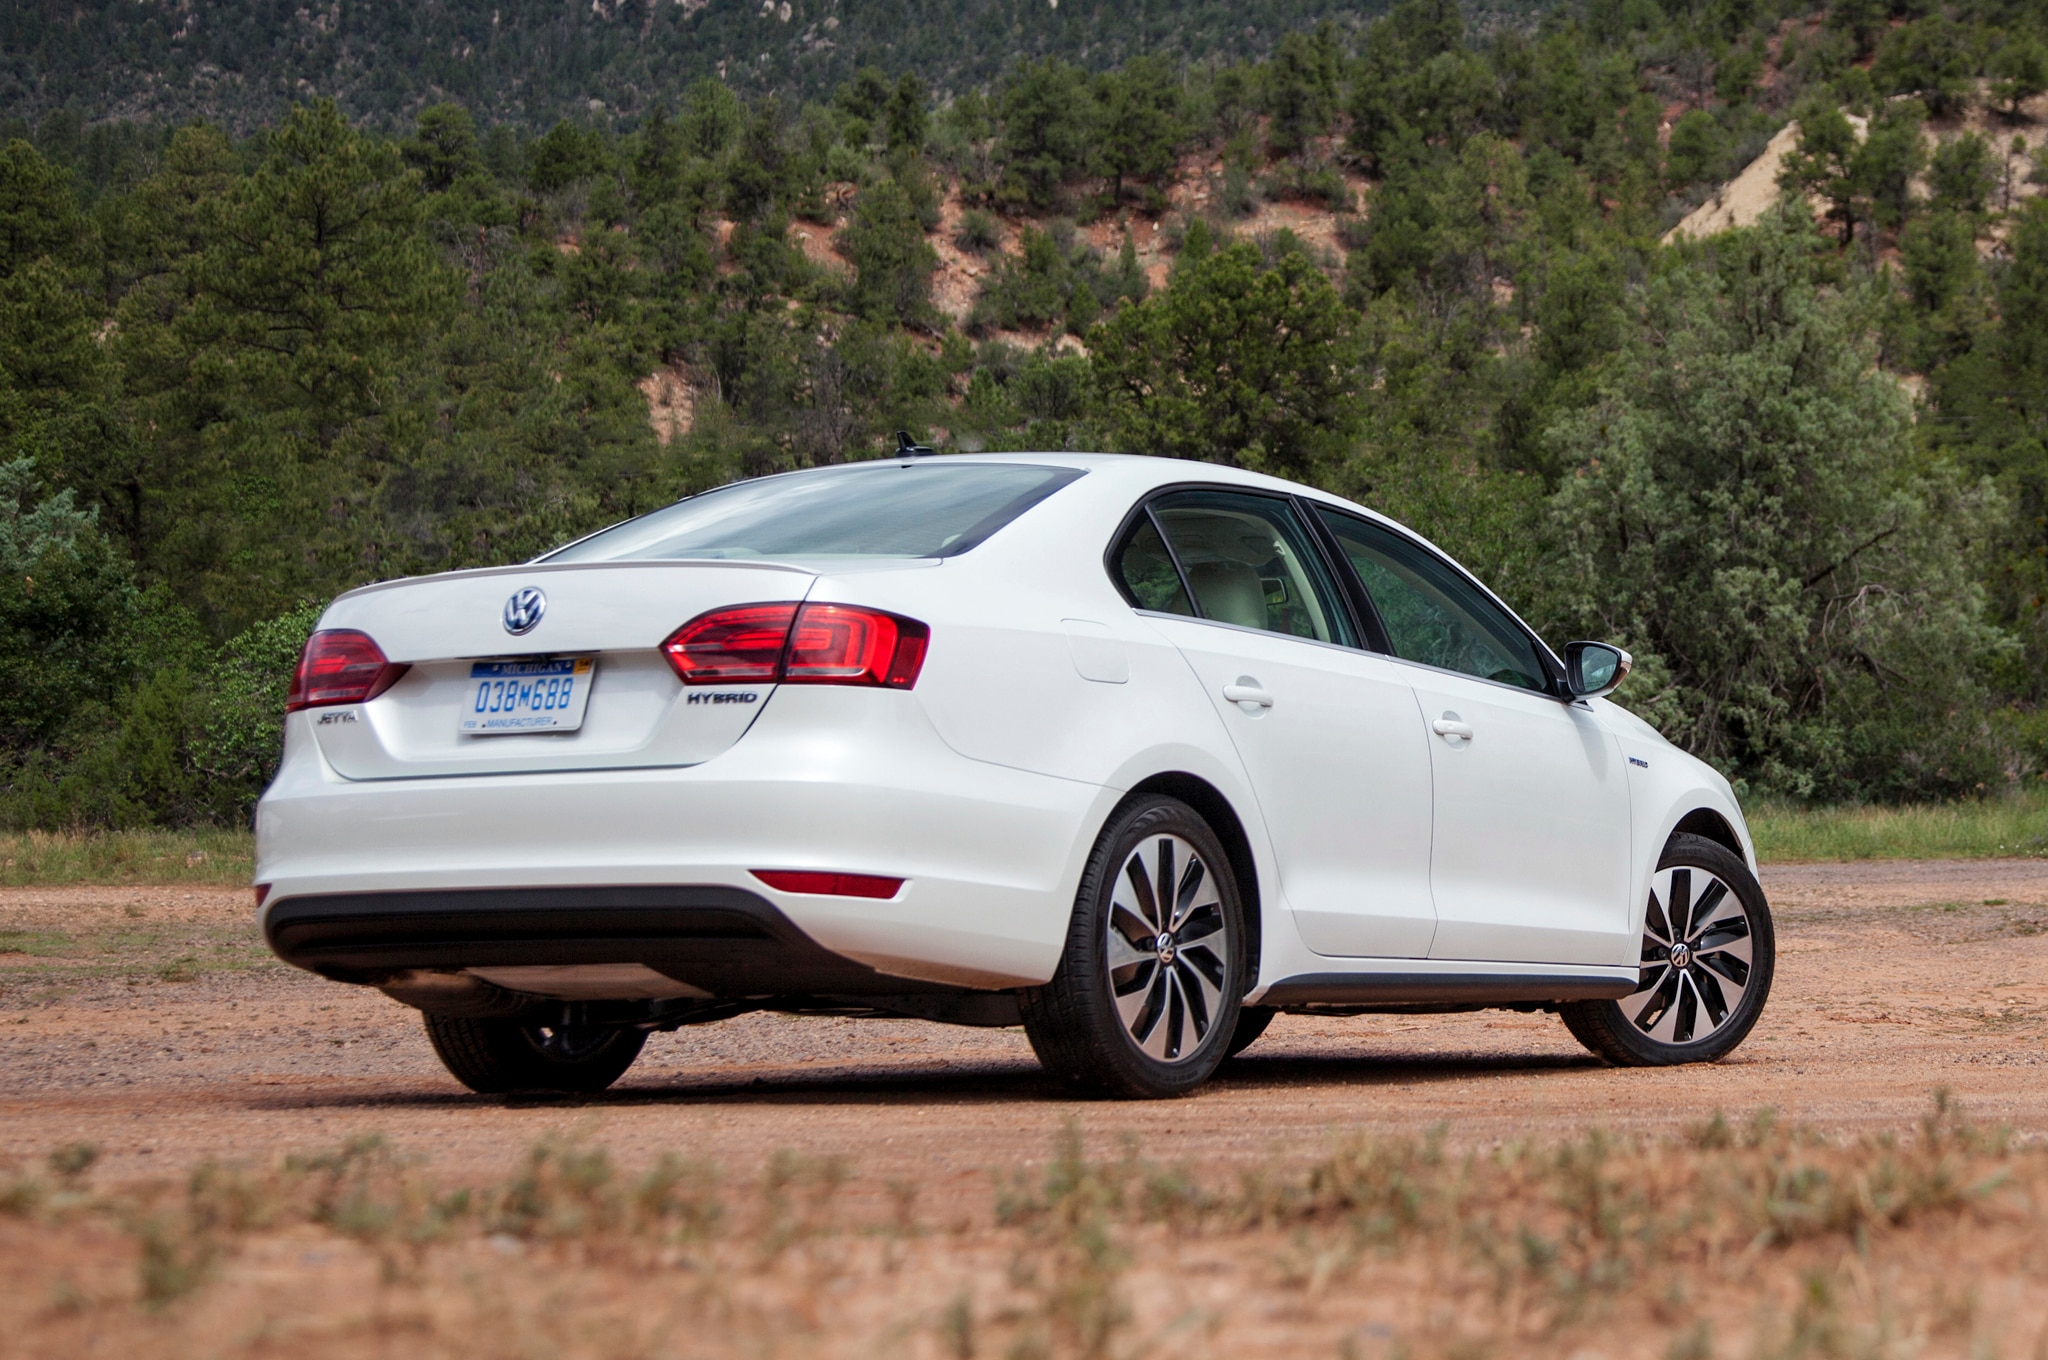 jetta all vw car news models my a golf will of diesel h volkswagen when and fix list recalls how